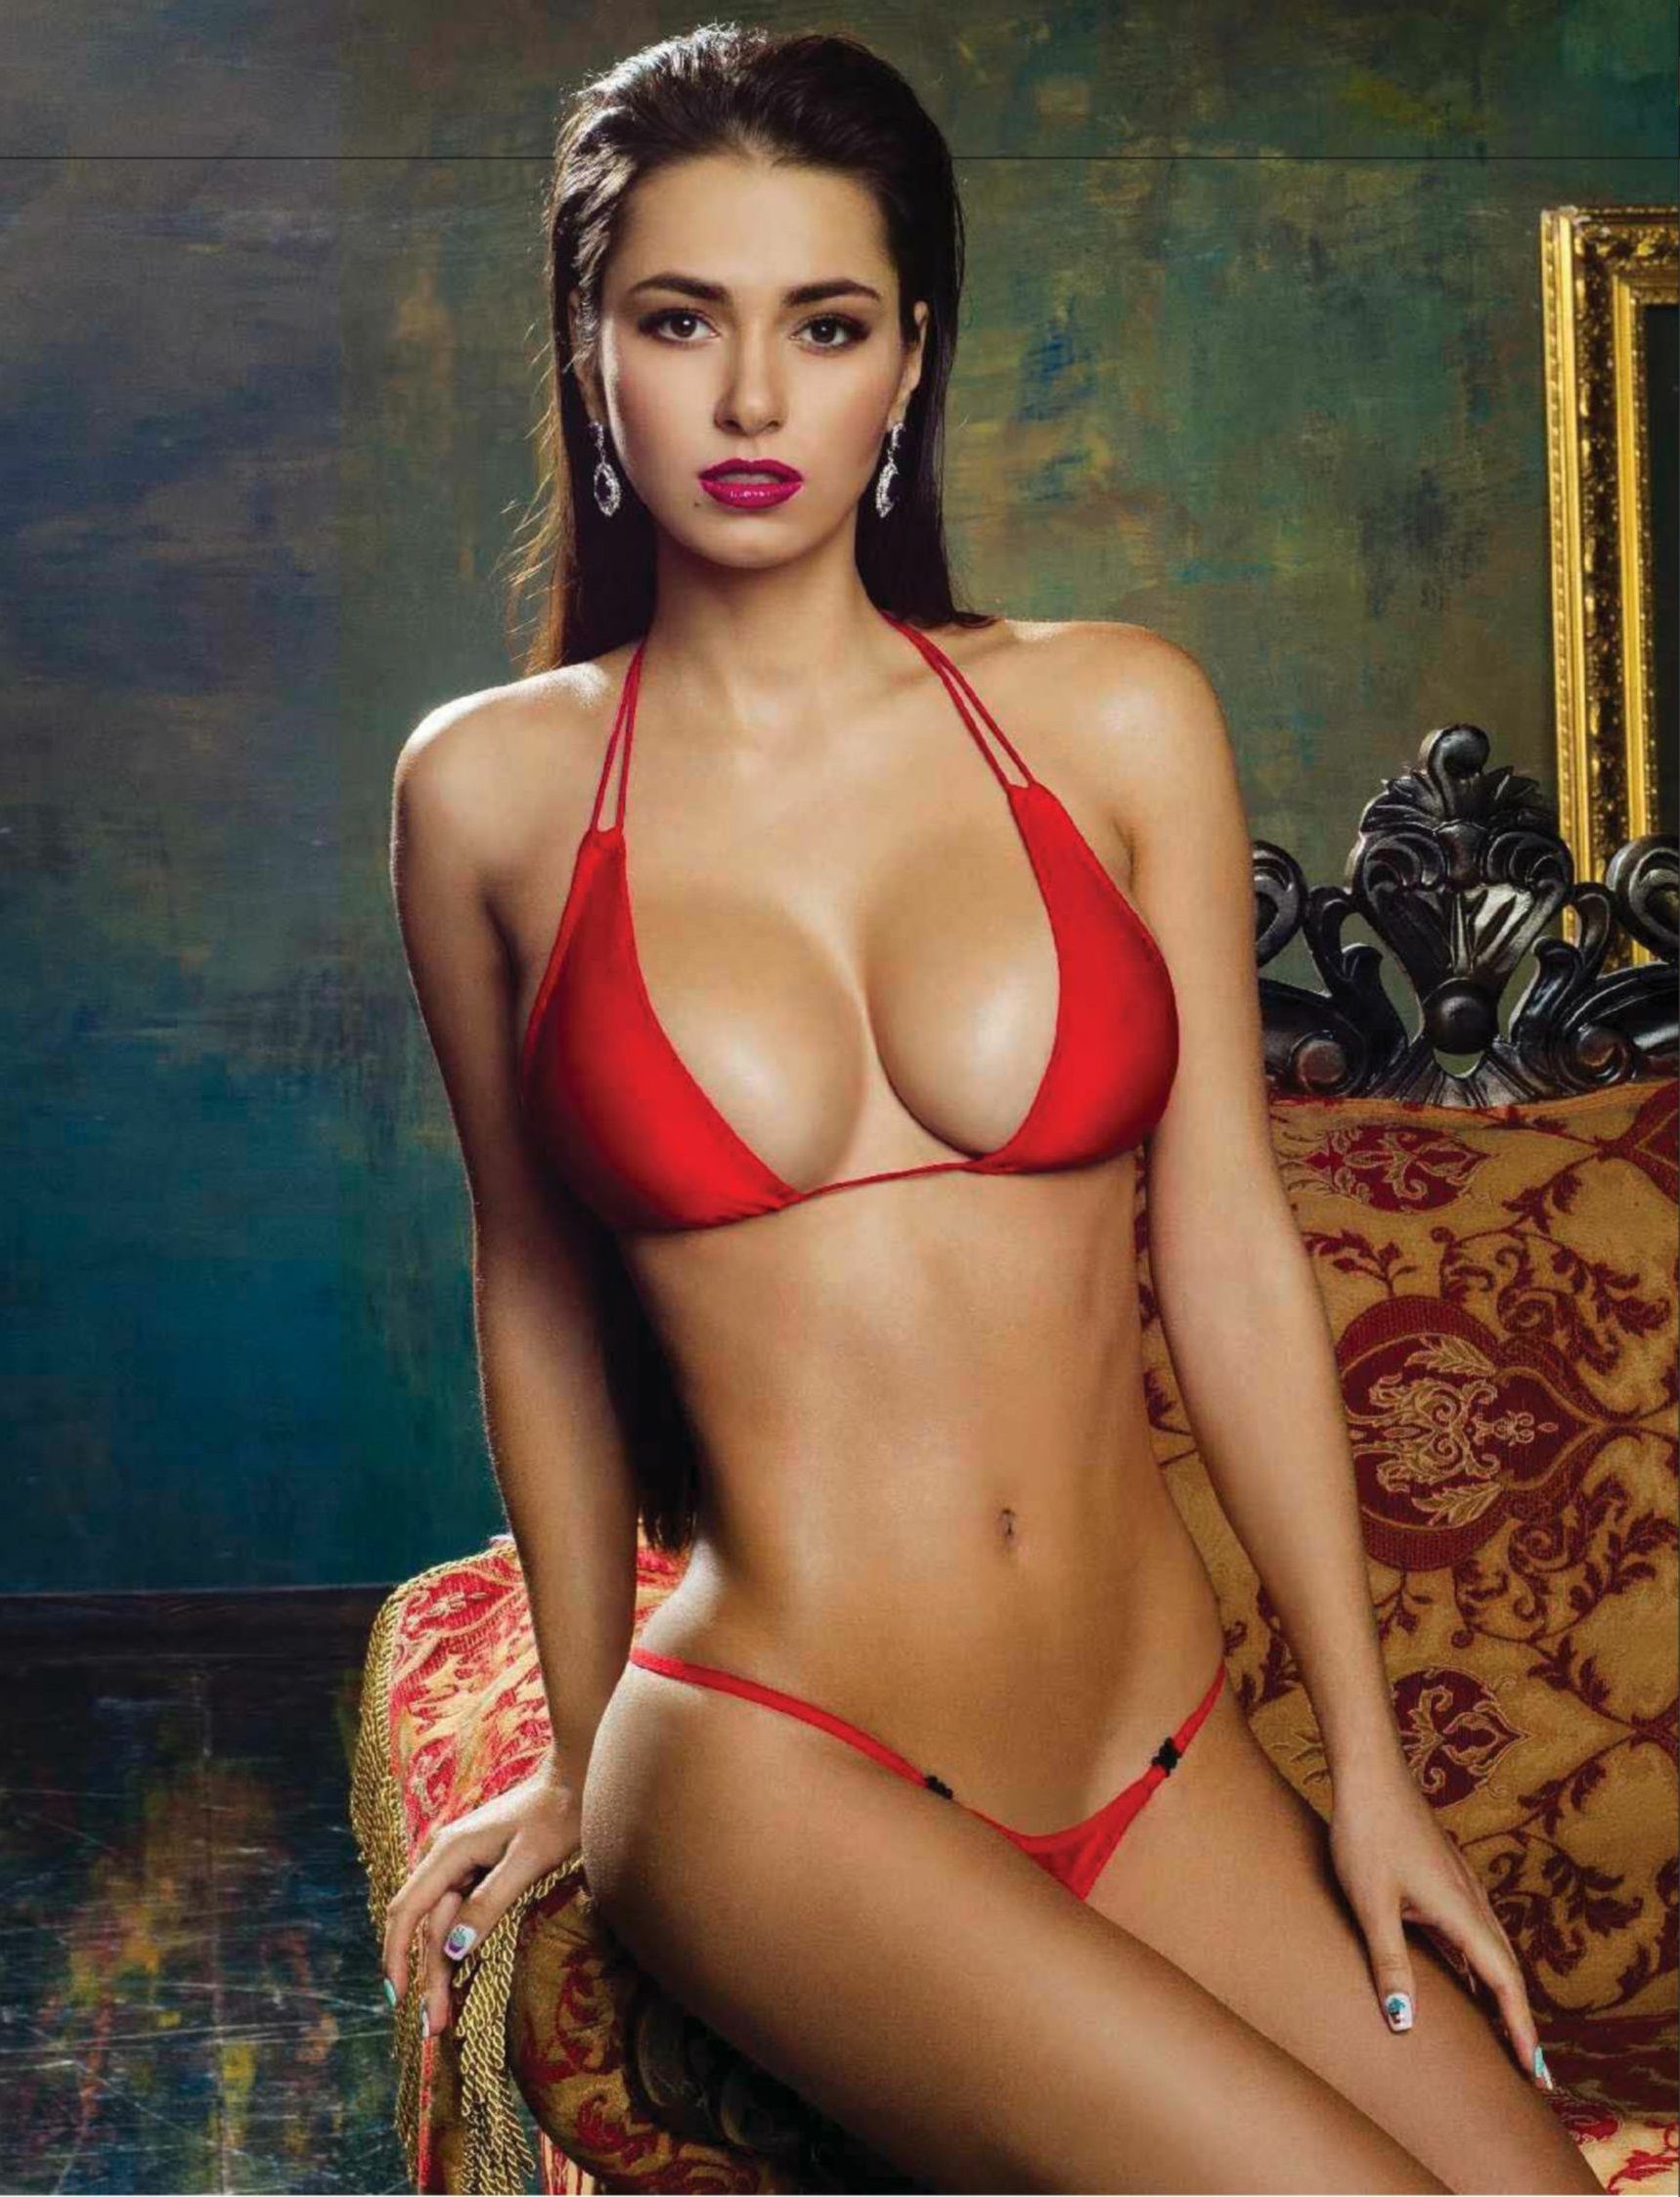 Helga Lovekaty Hot in Red Bikini